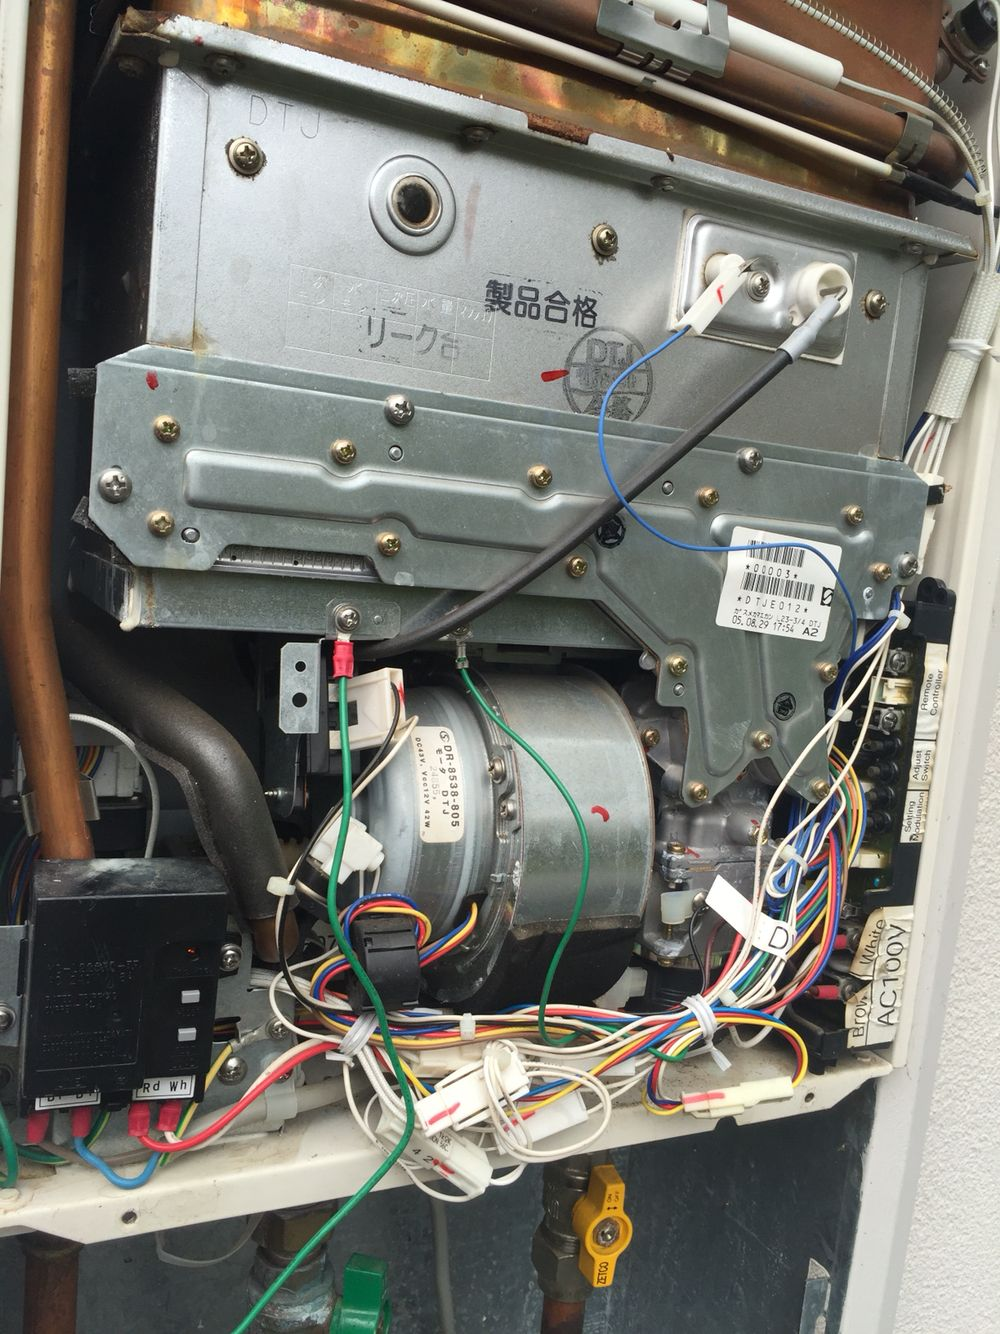 Pin On Hot Water Repairs And Hot Water Installations